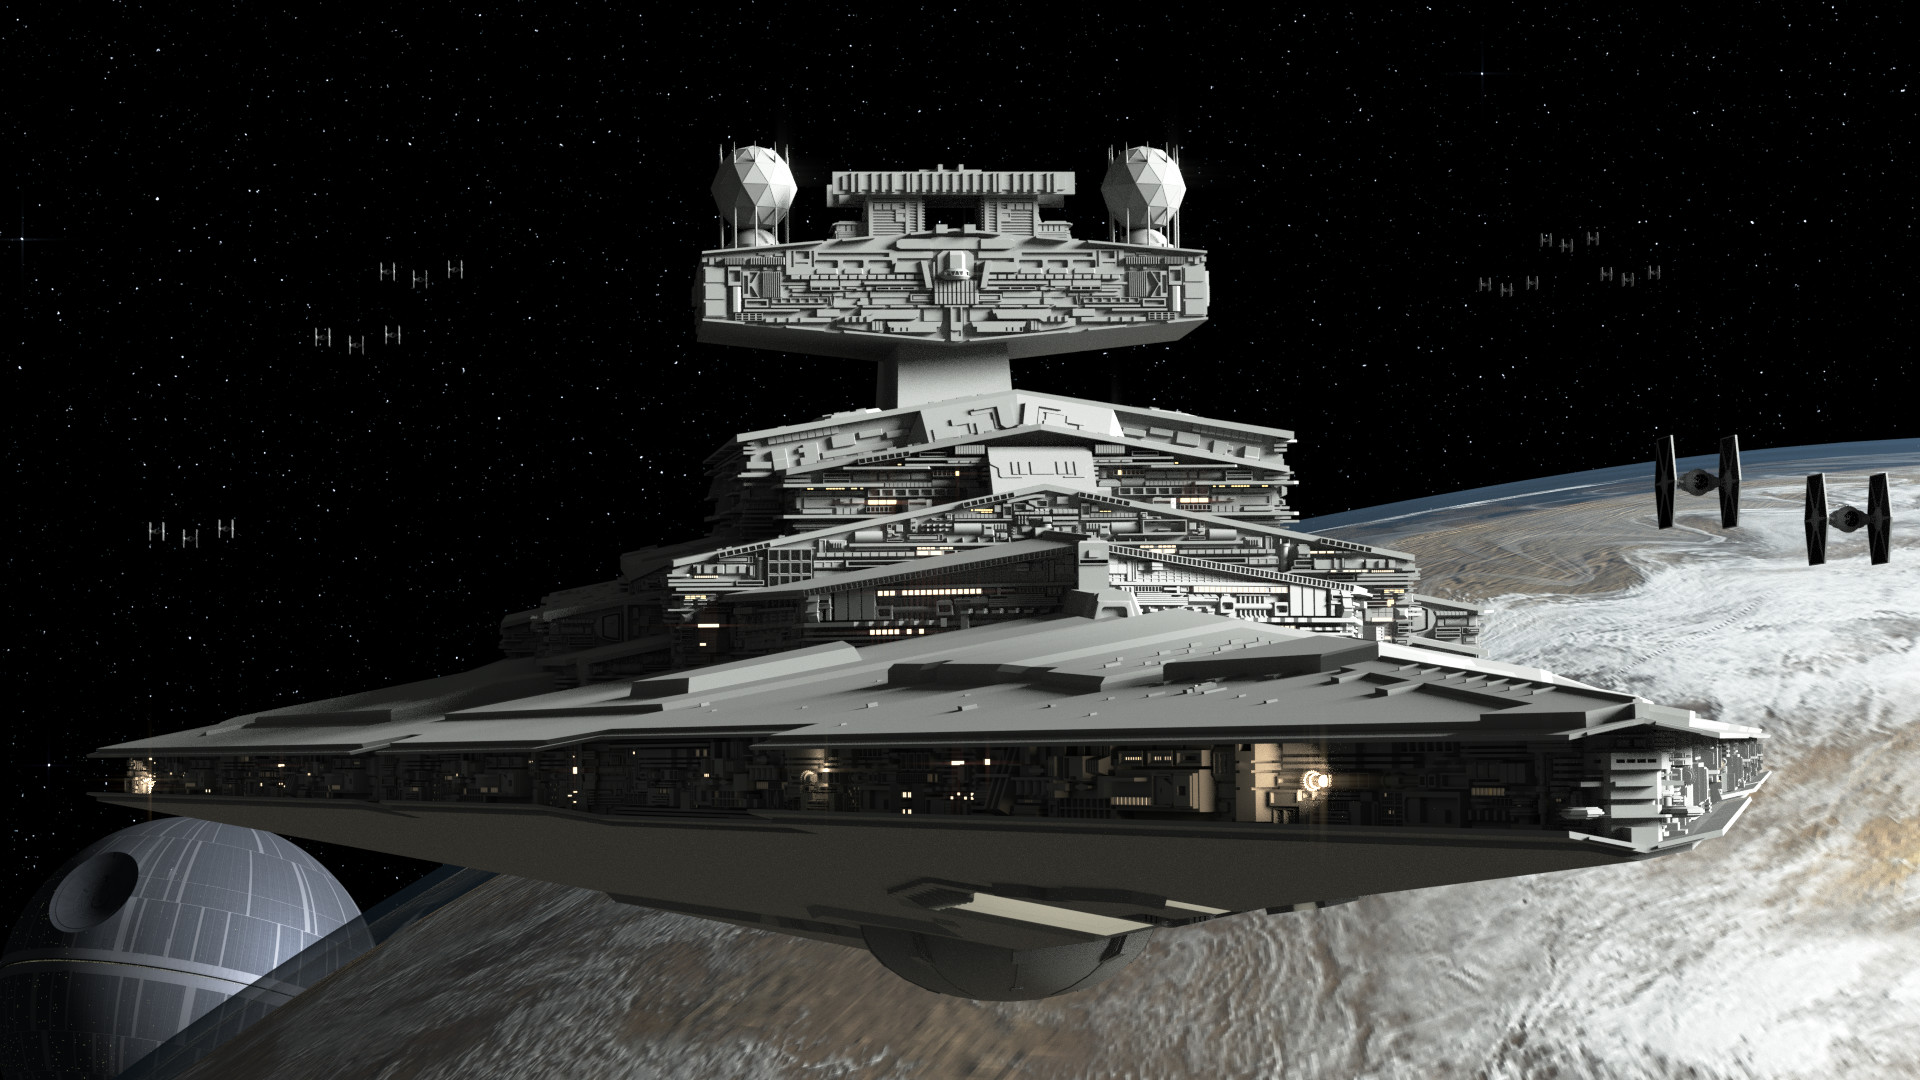 WIPImperial II Class Star Destroyer – Still needs lots of work, but I'd  like to know what you all think I can improve on!